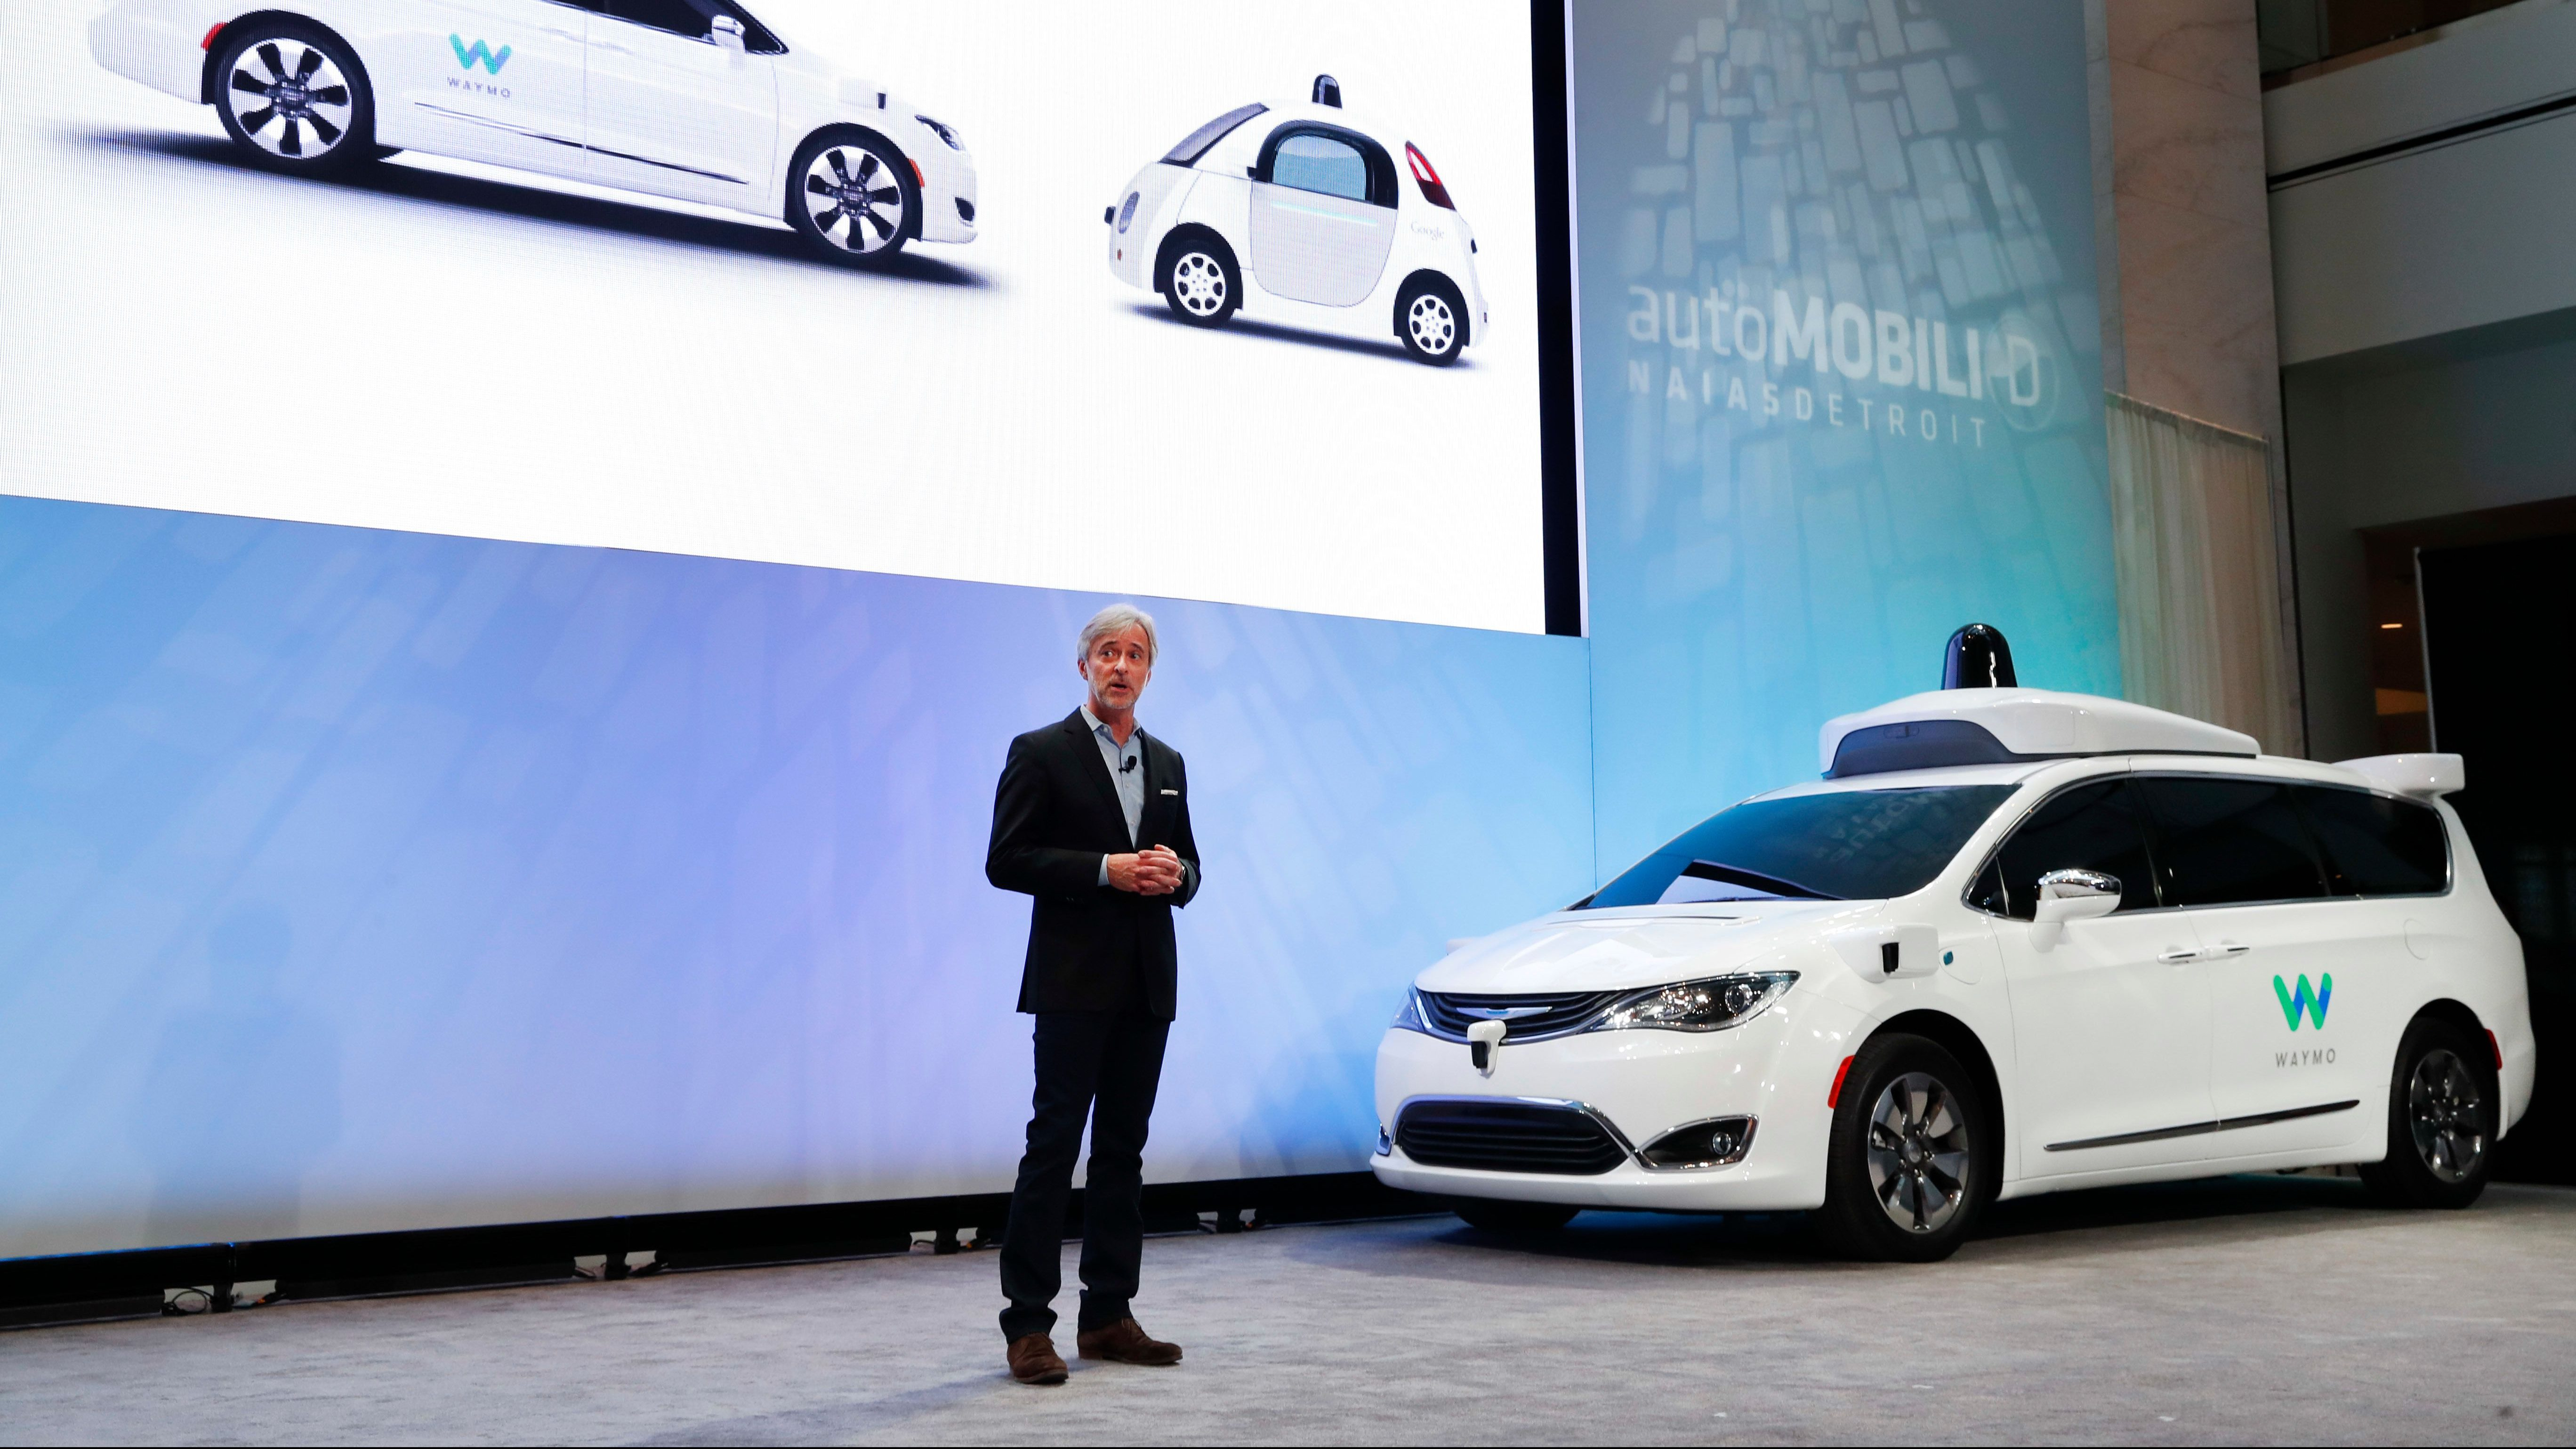 John Krafcik, CEO of Waymo Inc., the autonomous vehicle company created by Google's parent company, introduces a Chrysler Pacifica hybrid outfitted with Waymo's own suite of sensors and radar at the North American International Auto Show in Detroit, Sunday, Jan. 8, 2017.